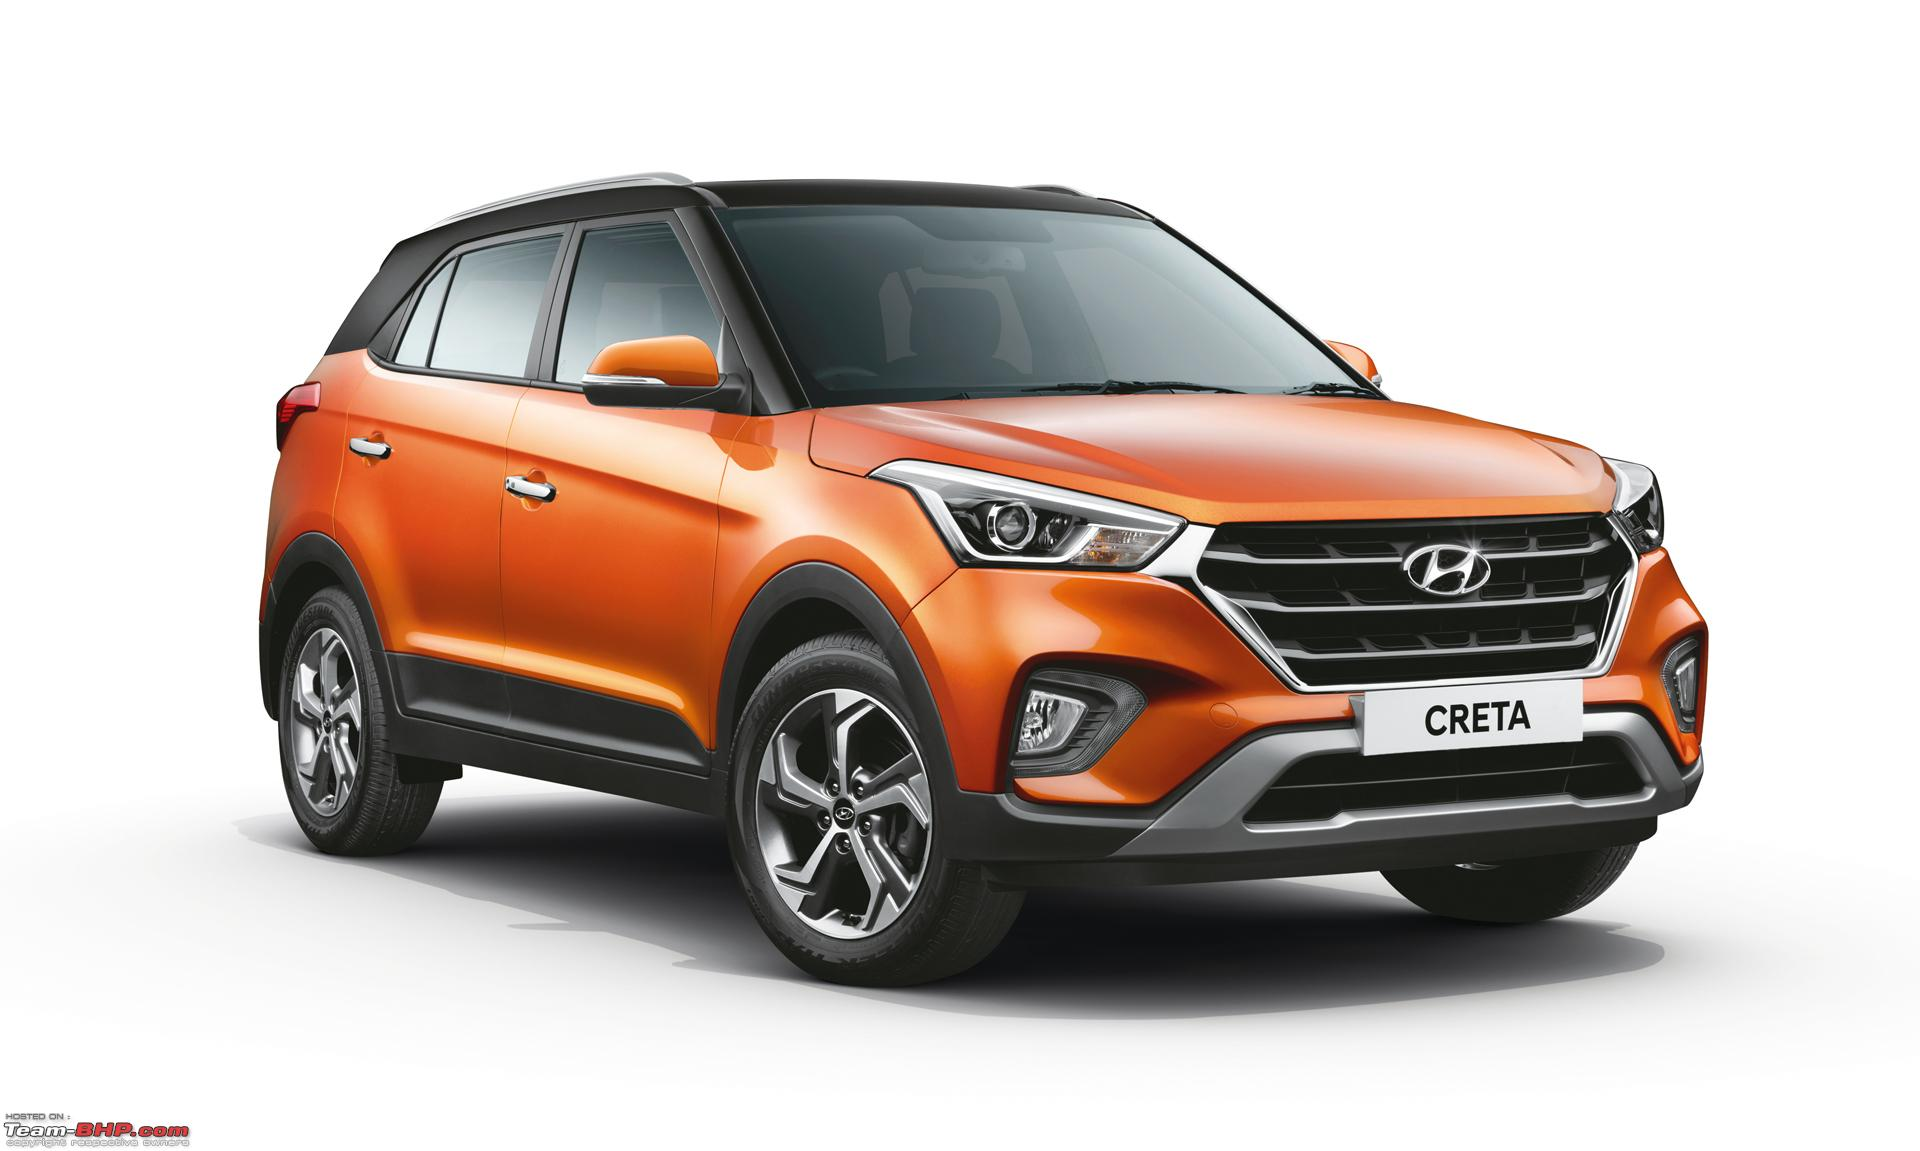 83 New 2020 Hyundai I20 Reviews